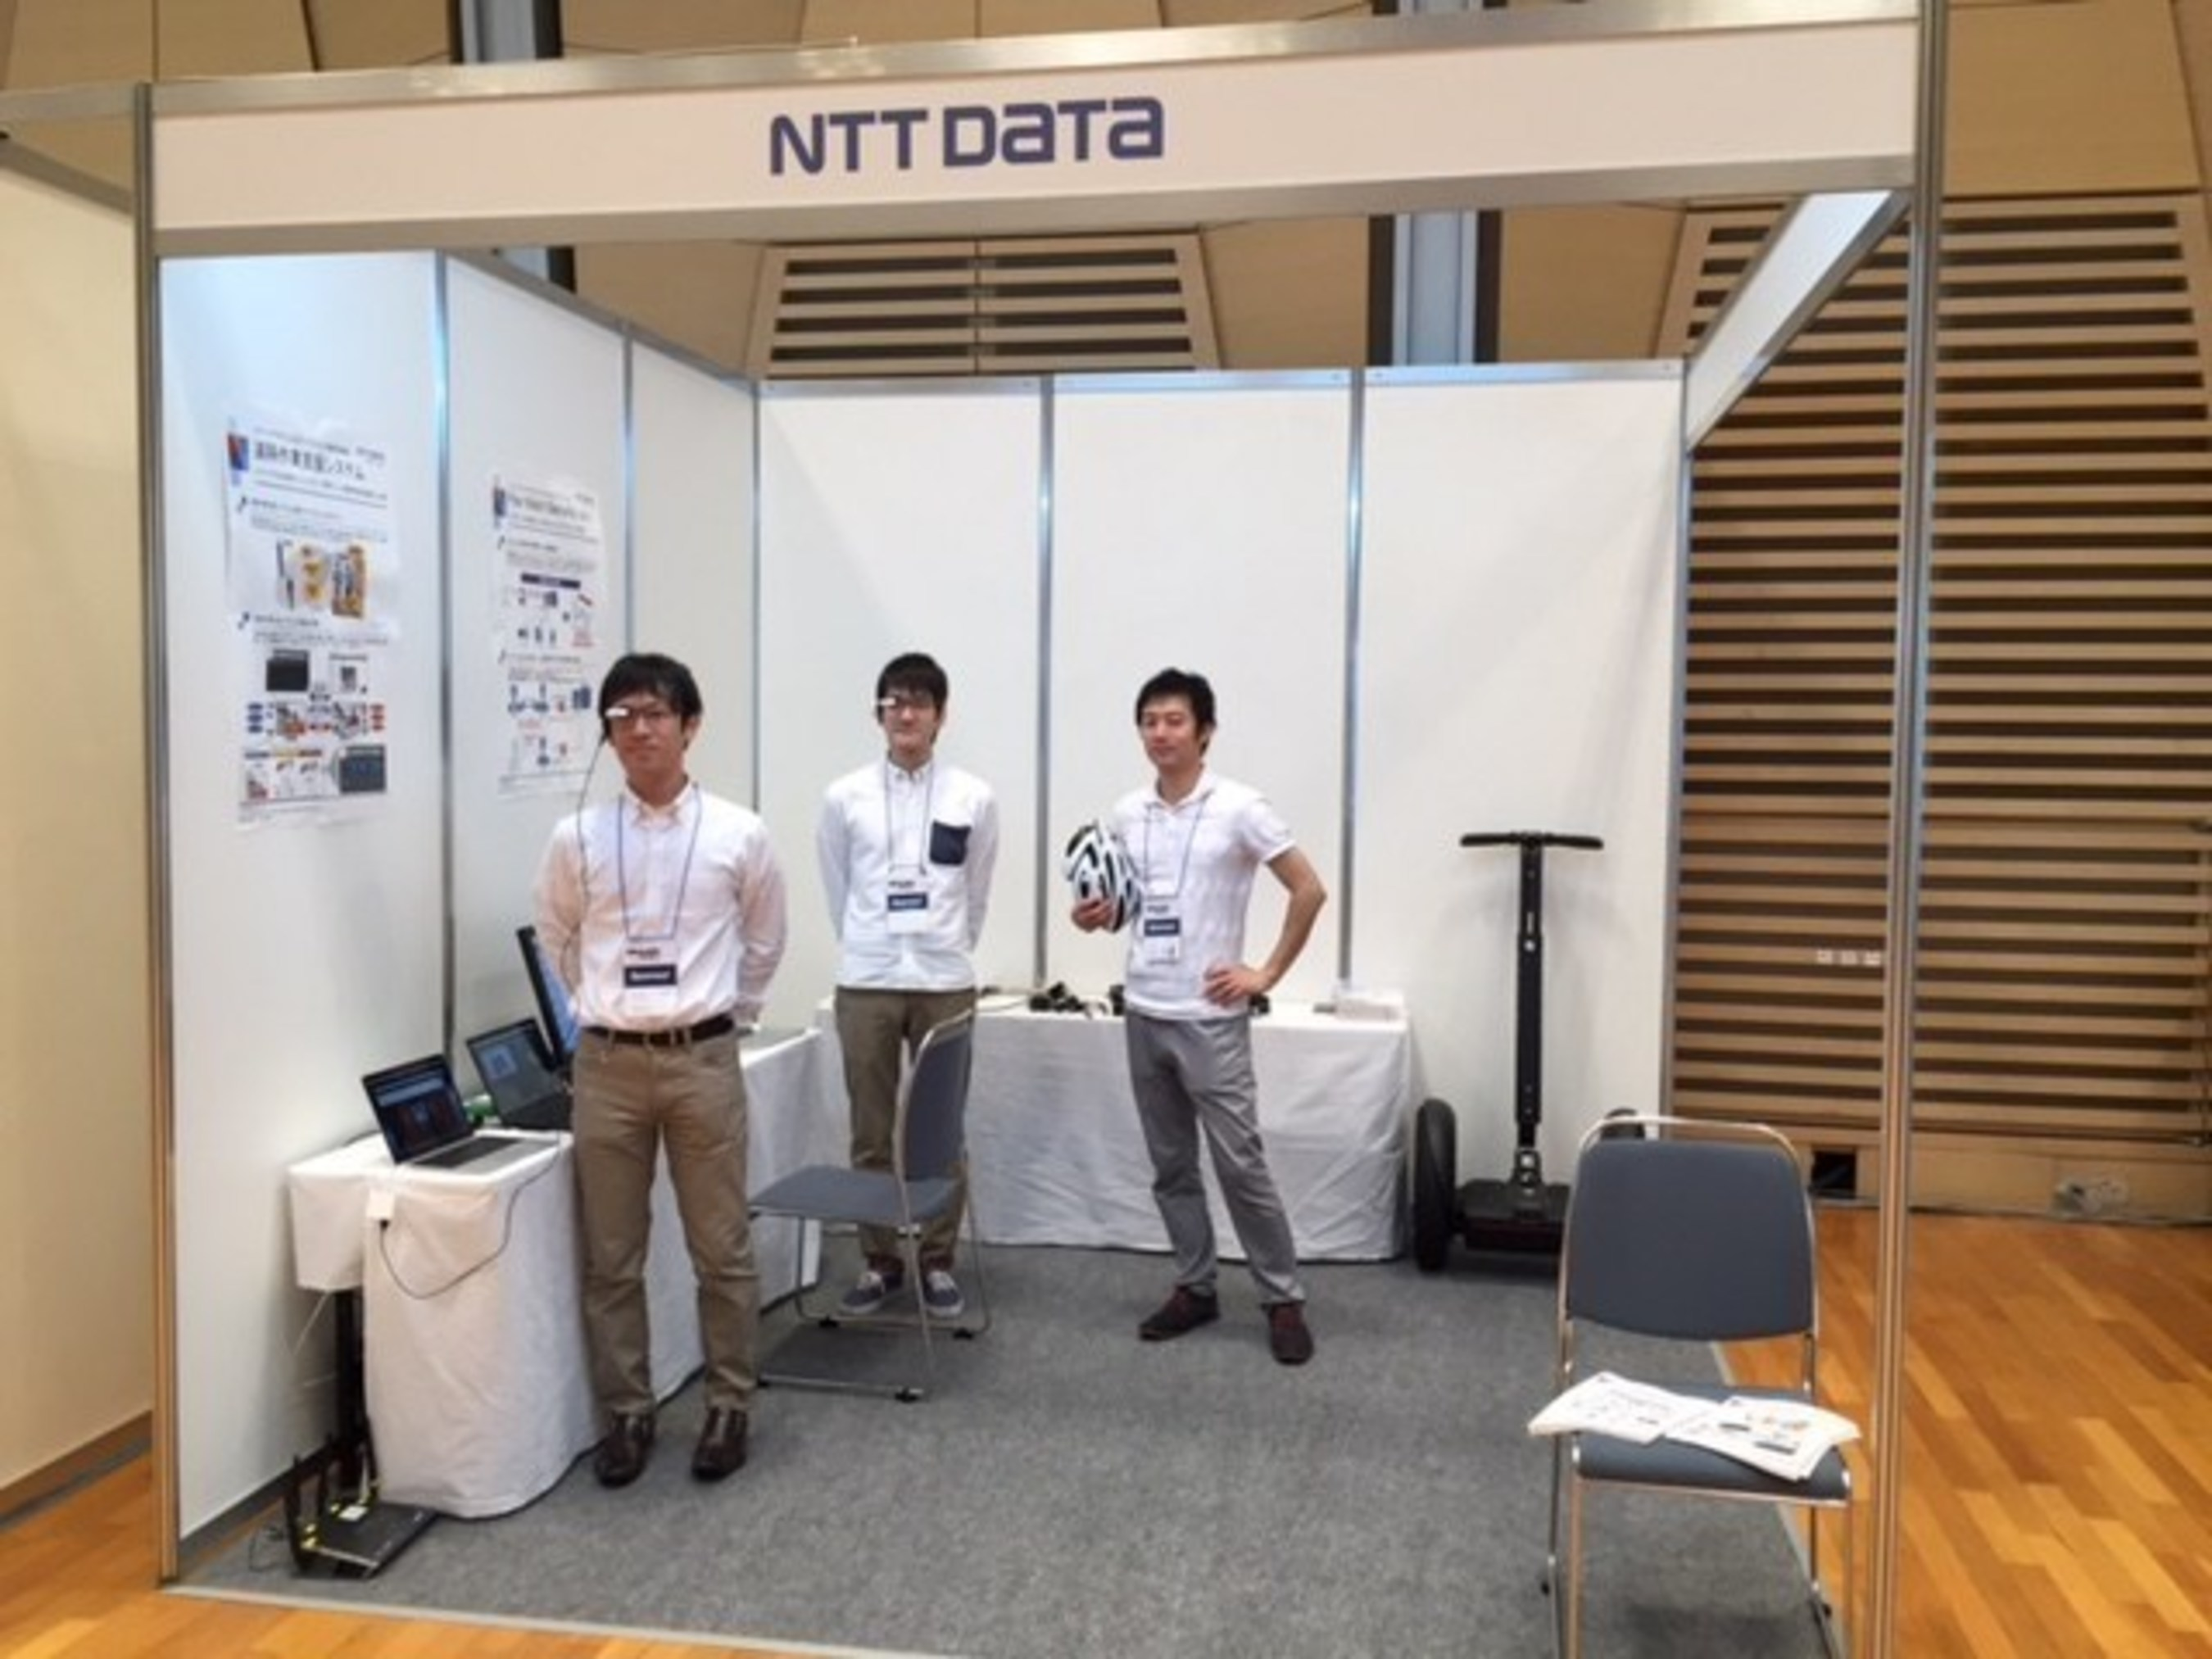 Vuzix M100 Smart Glasses Support NTT DATA's Remote Field Service System